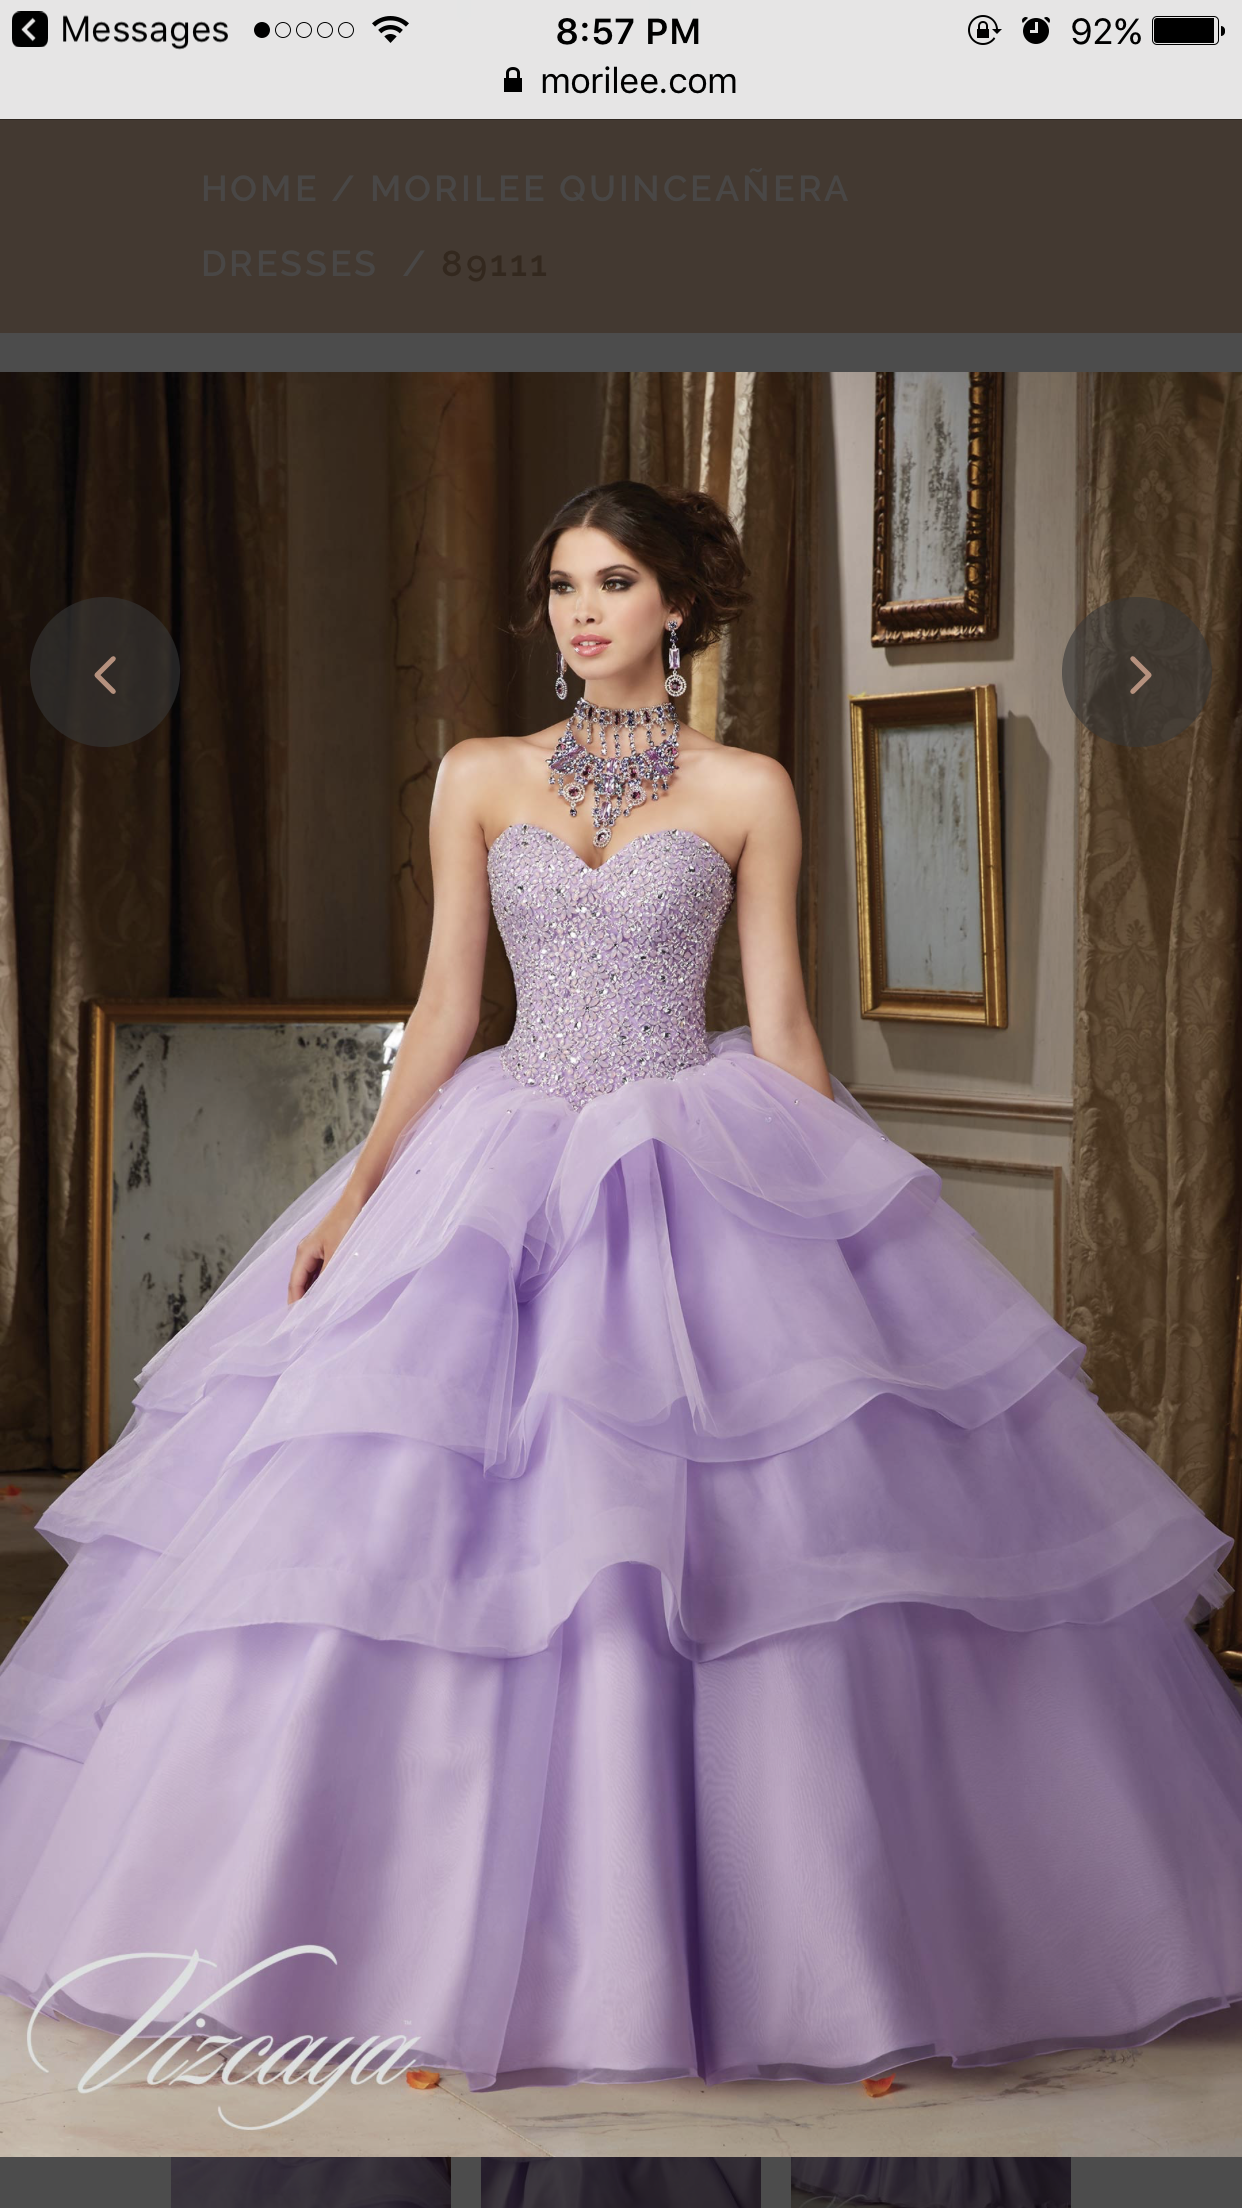 Fashion style White and purple quinceanera dresses for girls